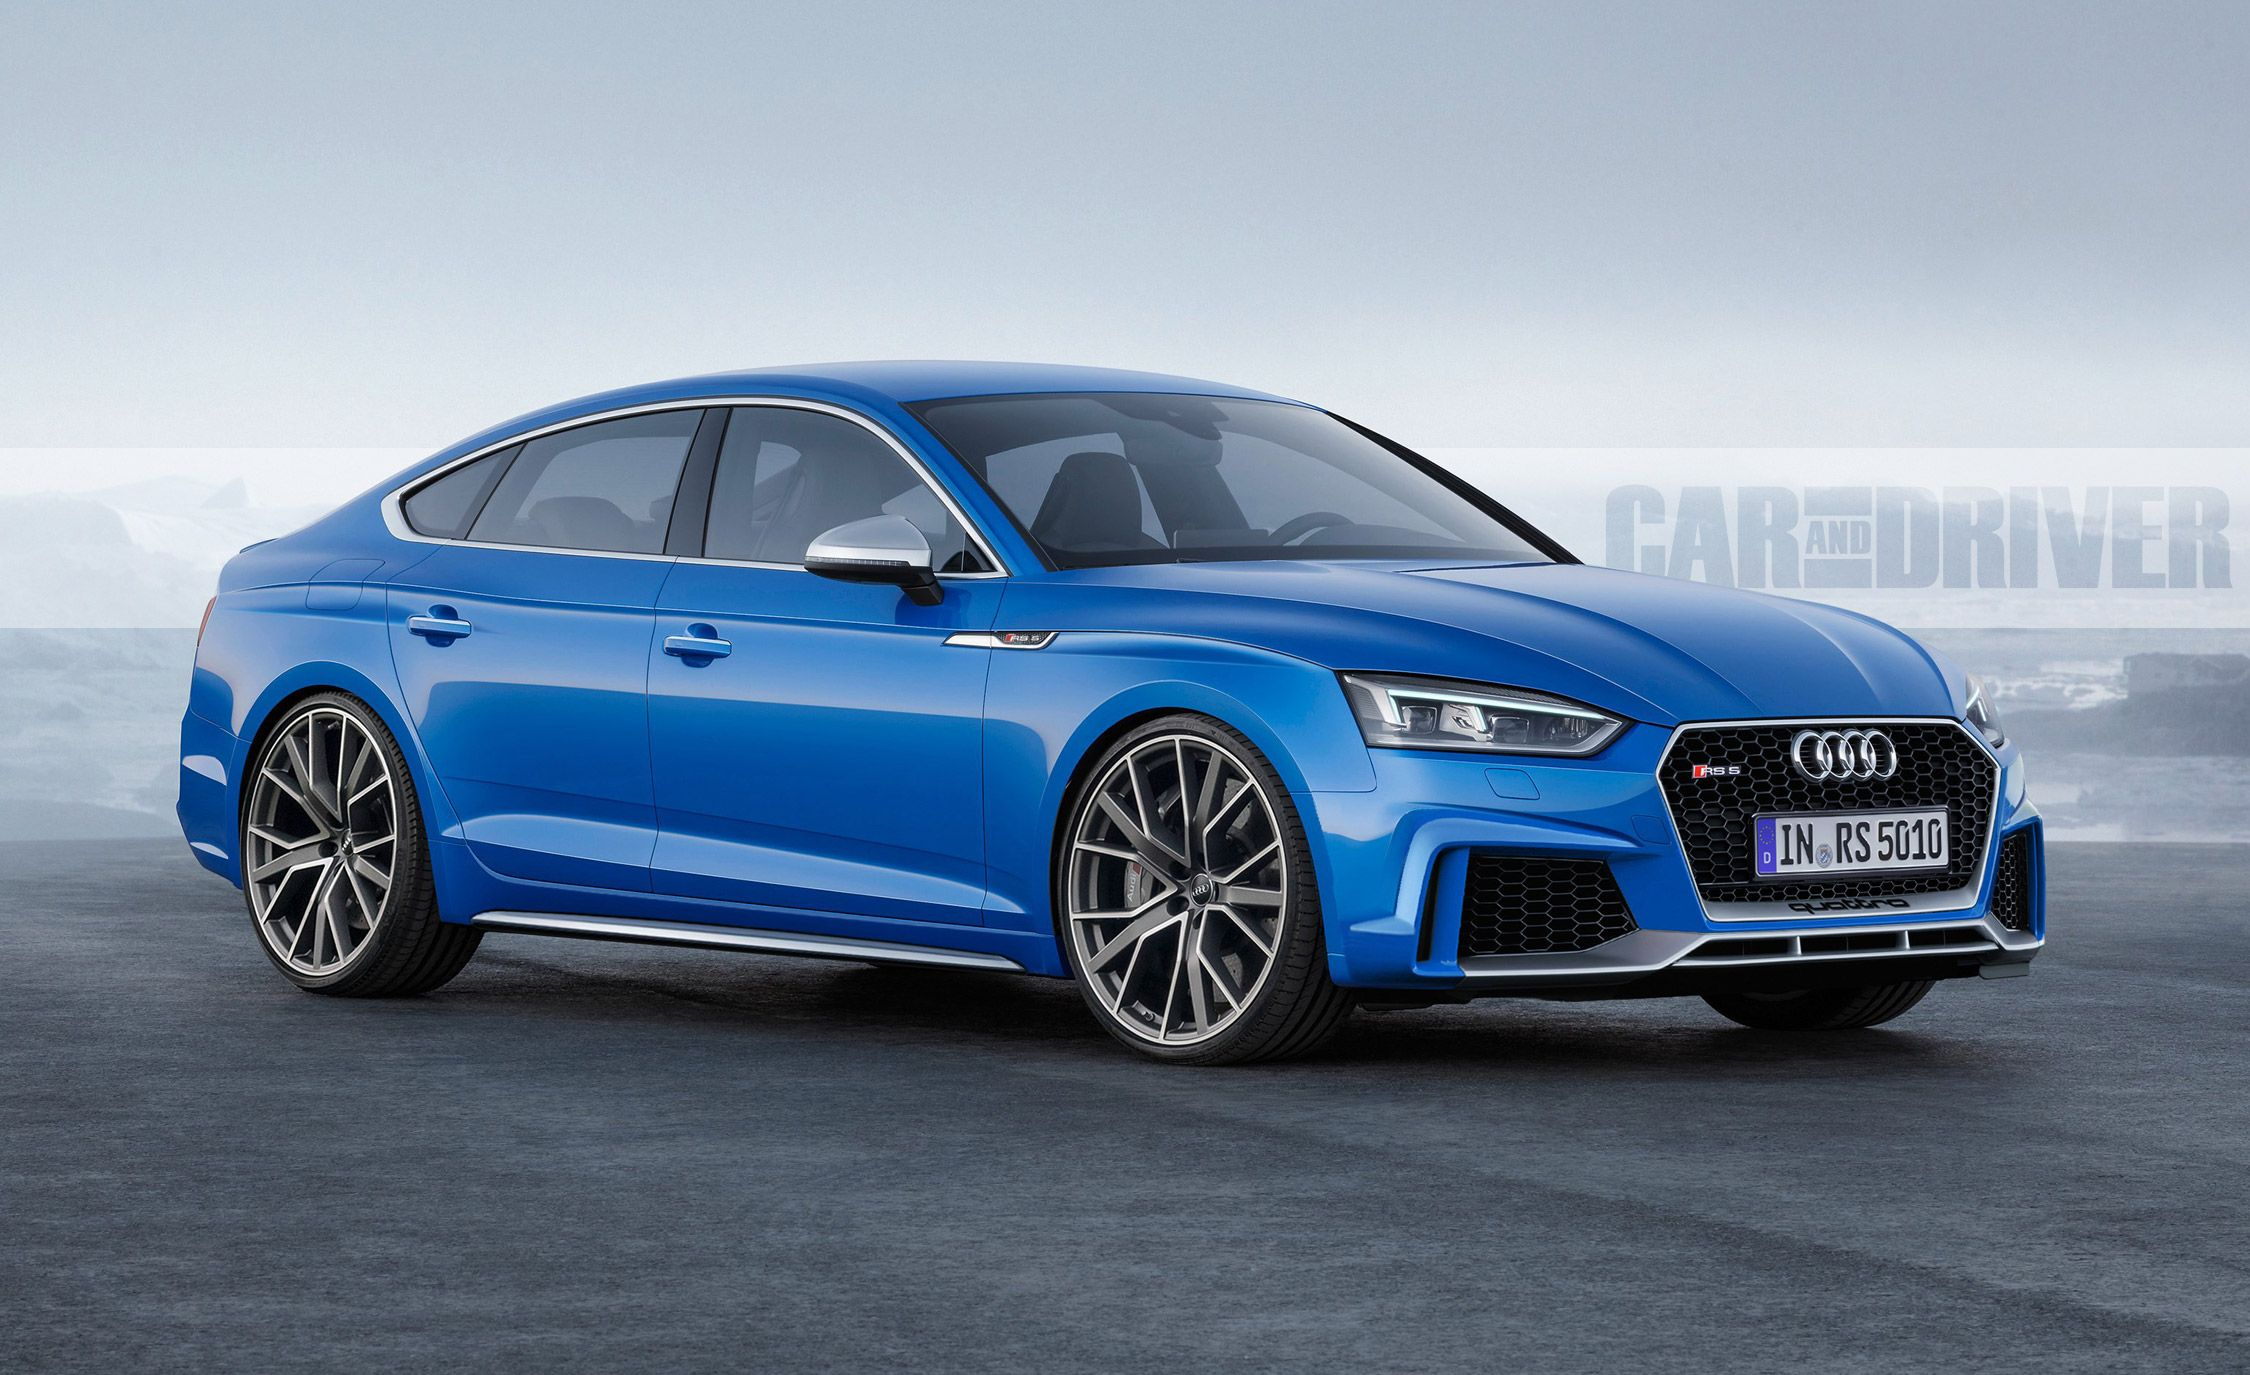 2019 Audi Rs5 Reviews Audi Rs5 Price Photos And Specs Car And